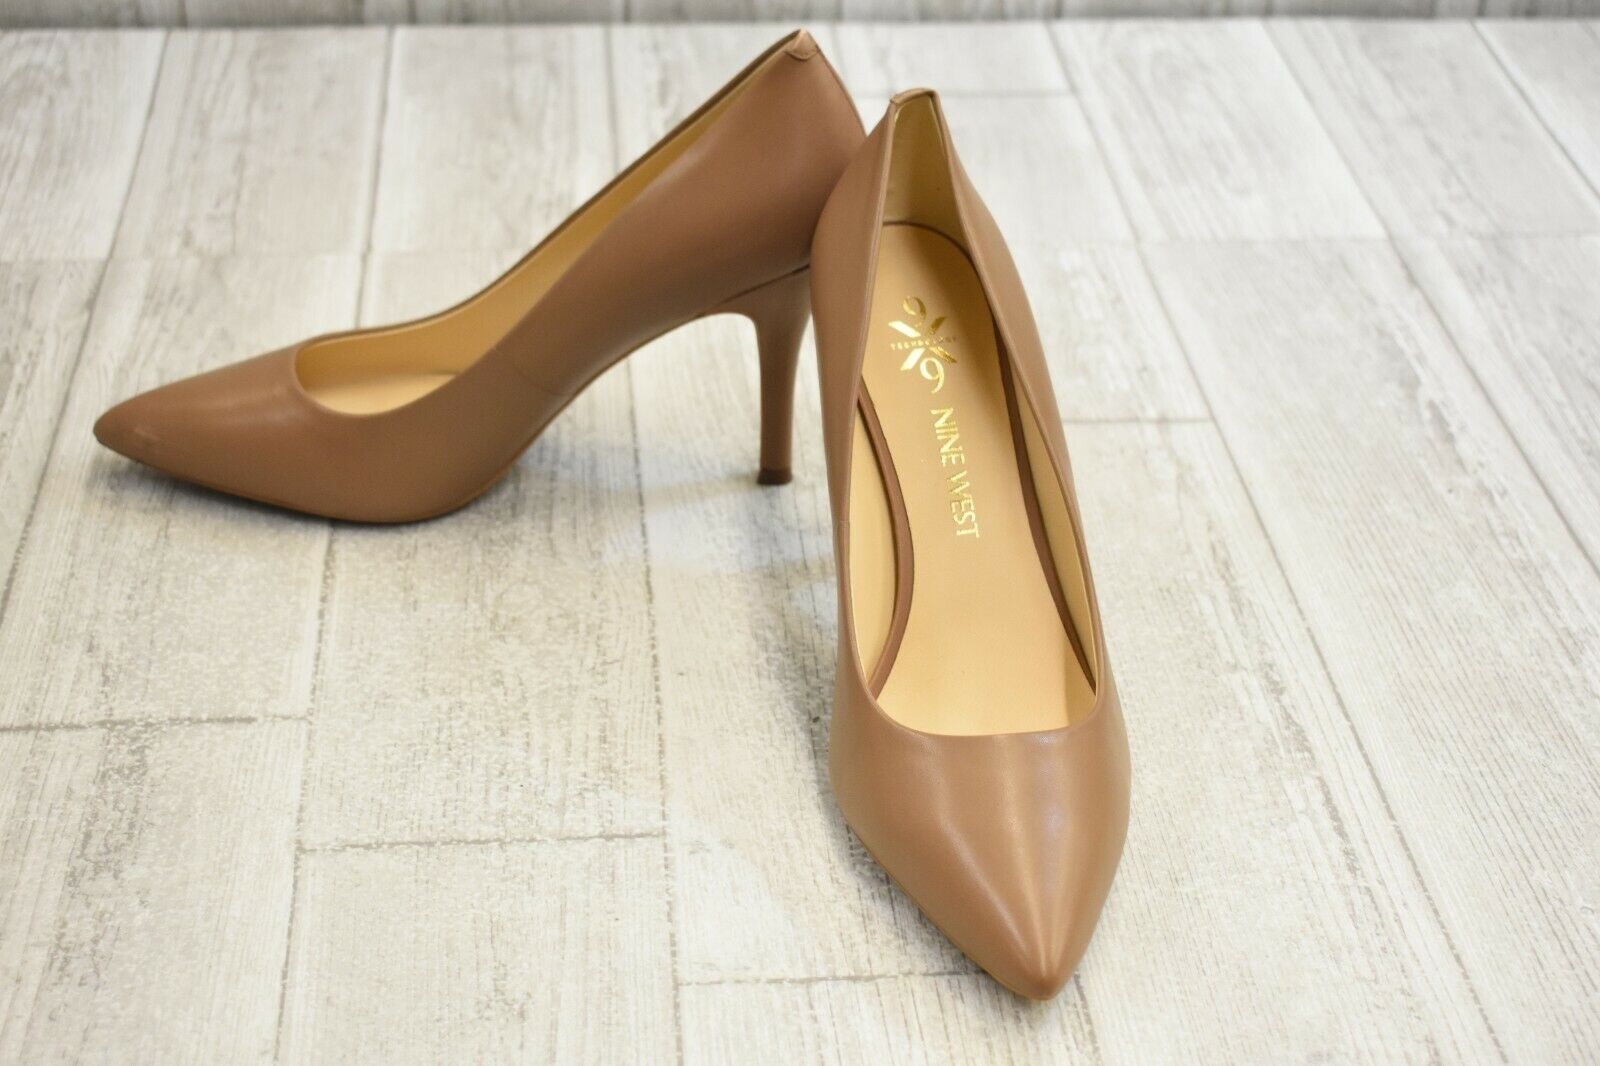 Nine West Fifth9X9 Pointed Toe Pump - Women's Size 9.5M Brown